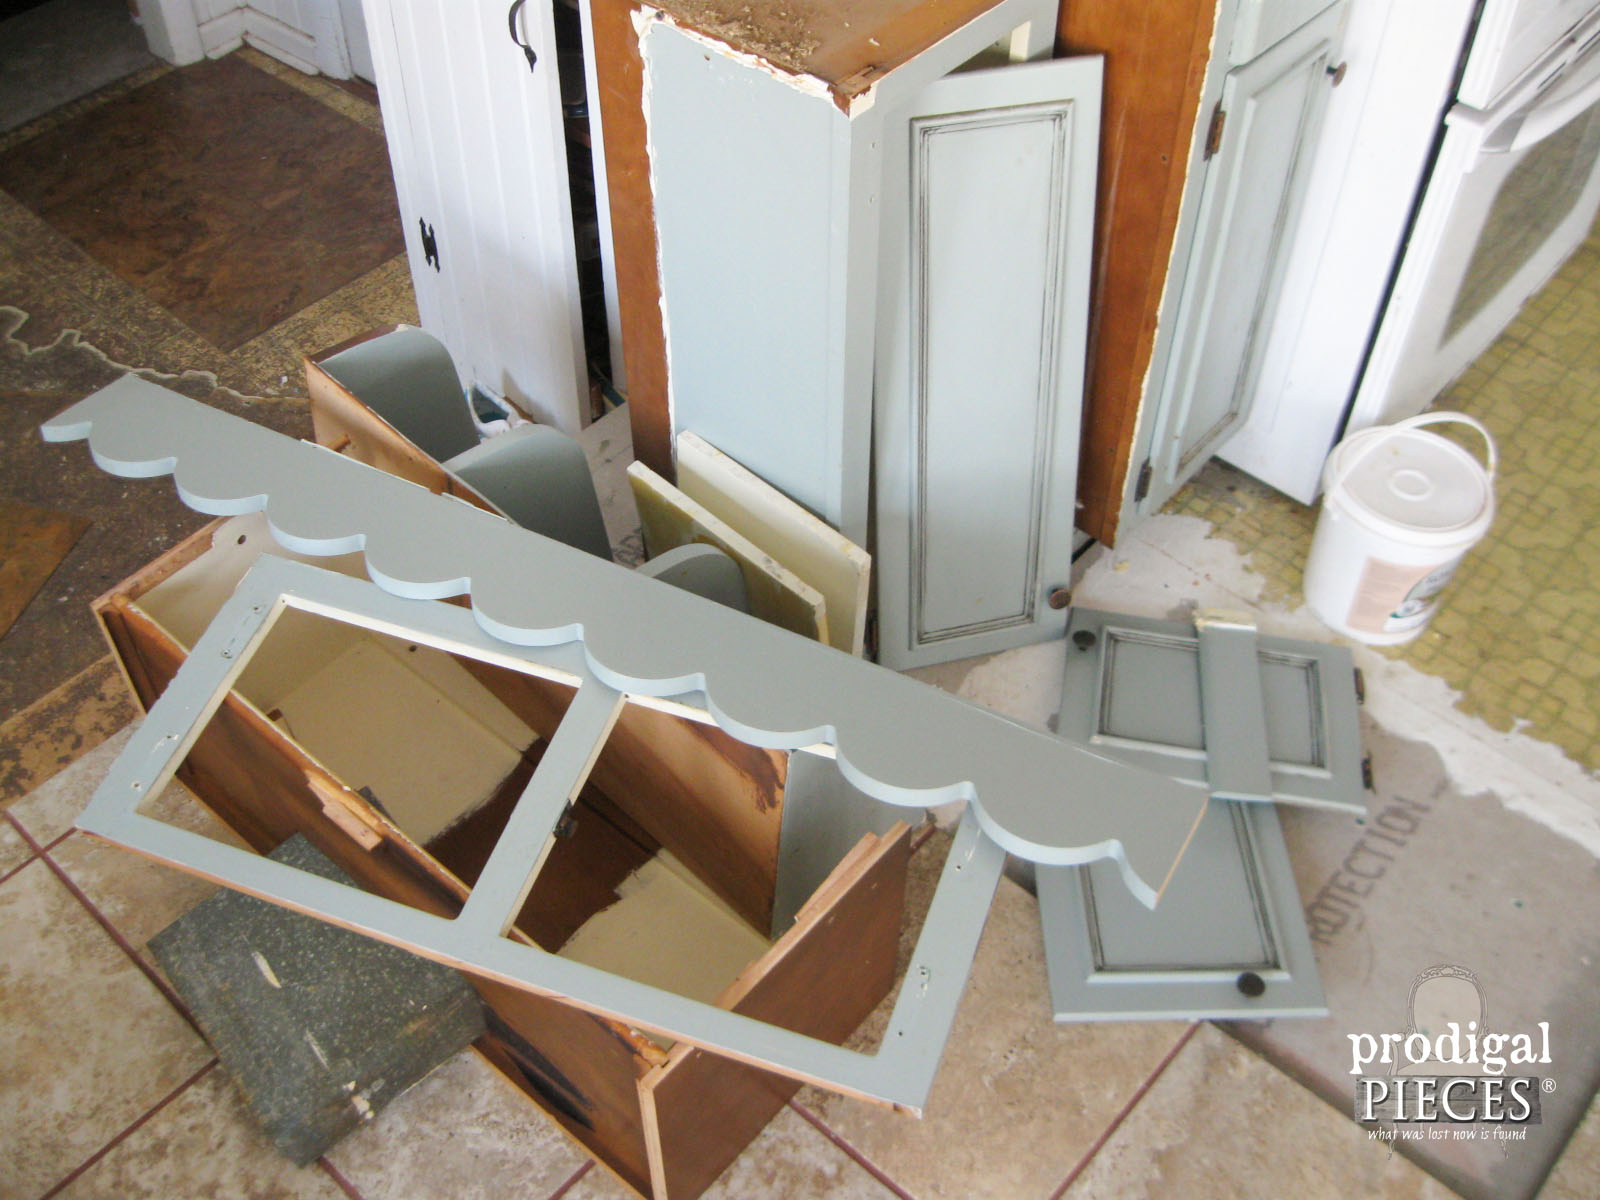 Pile Of Discarded Kitchen Cabinets For Repurpose By Prodigal Pieces Www Prodigalpieces Com